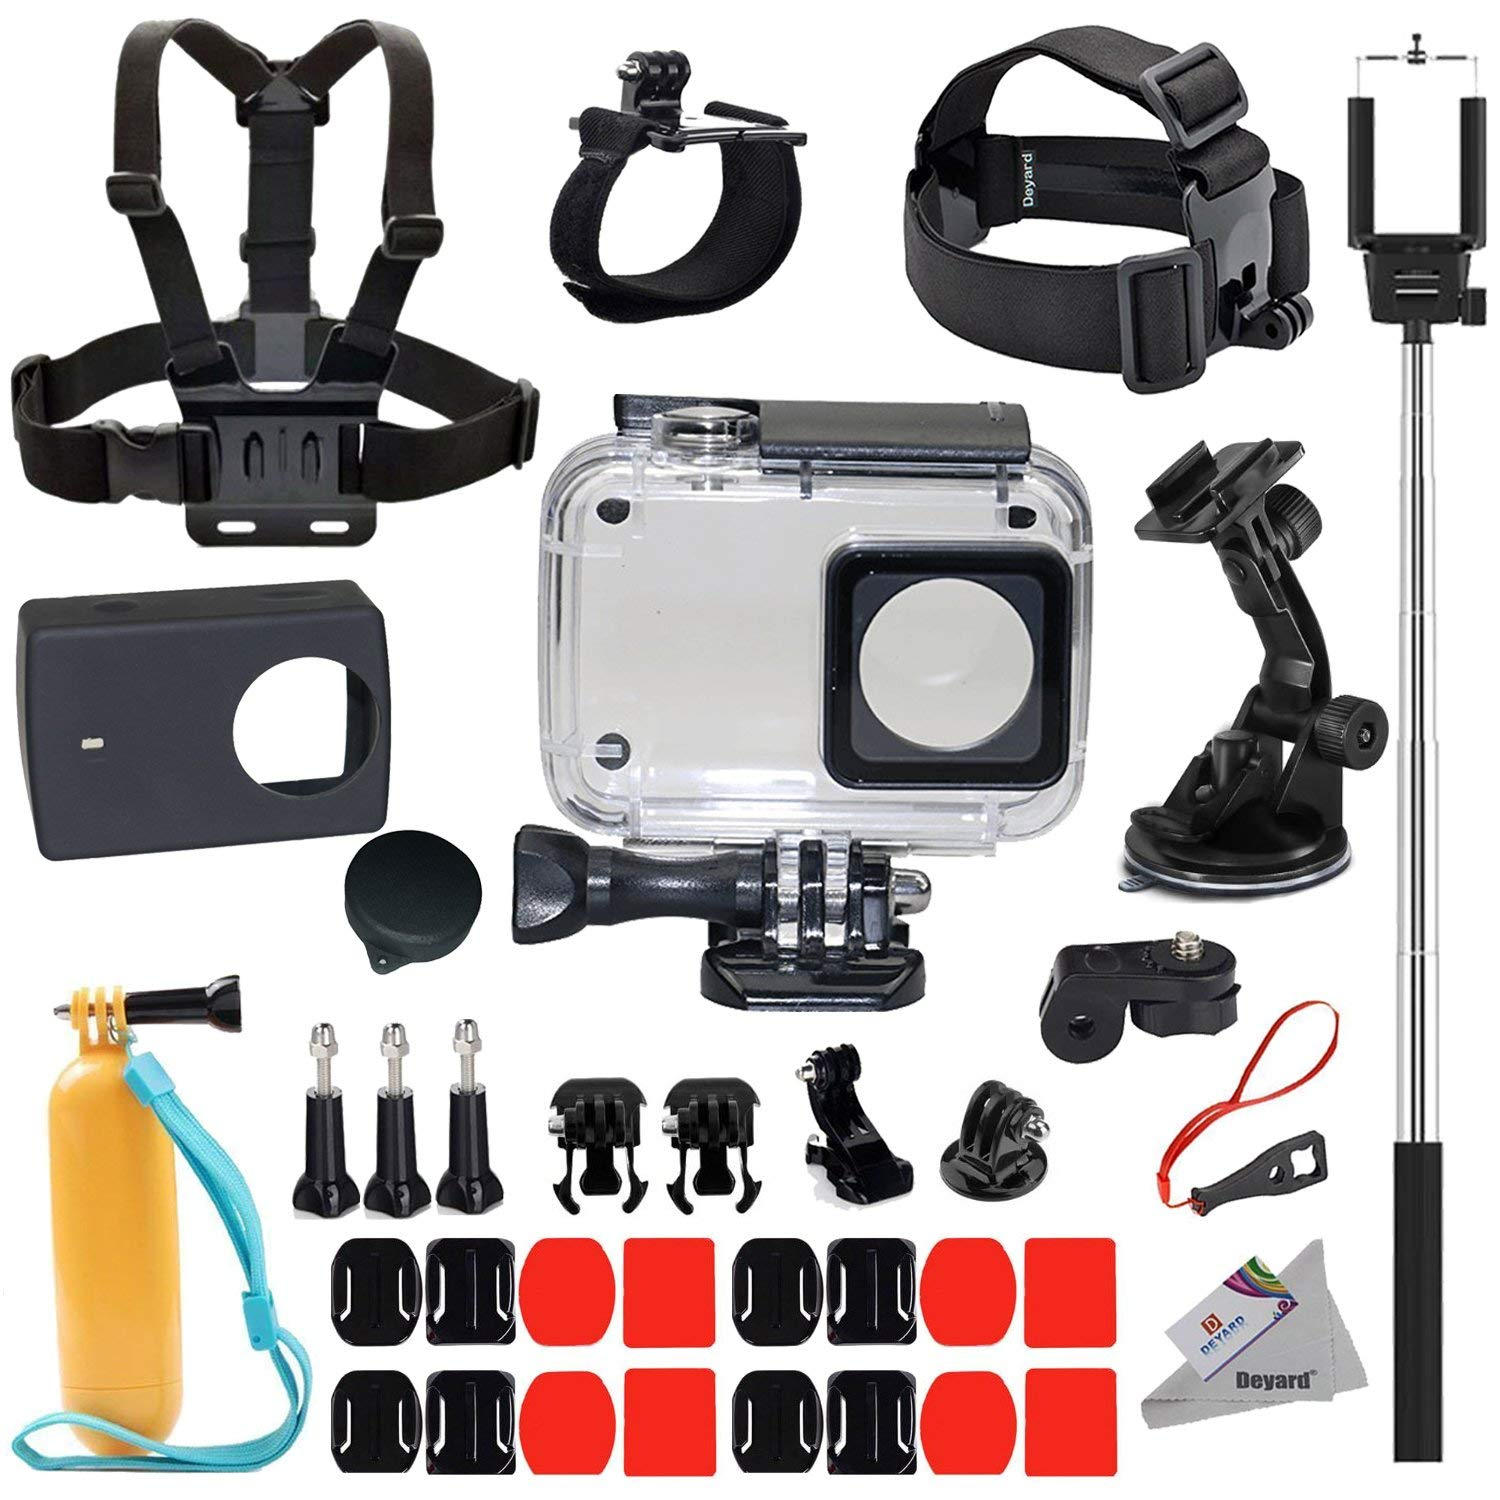 Protective Waterproof Housing Case 35 in 1 Accessories Bundle for Xiaomi 4K/4K+/Yi Lite/YI Discovery Action Camera 2 35m diving waterproof touch cover case for xiaomi yi 4k 2 ii action camera for xiaomi yi protective shell camera accessories